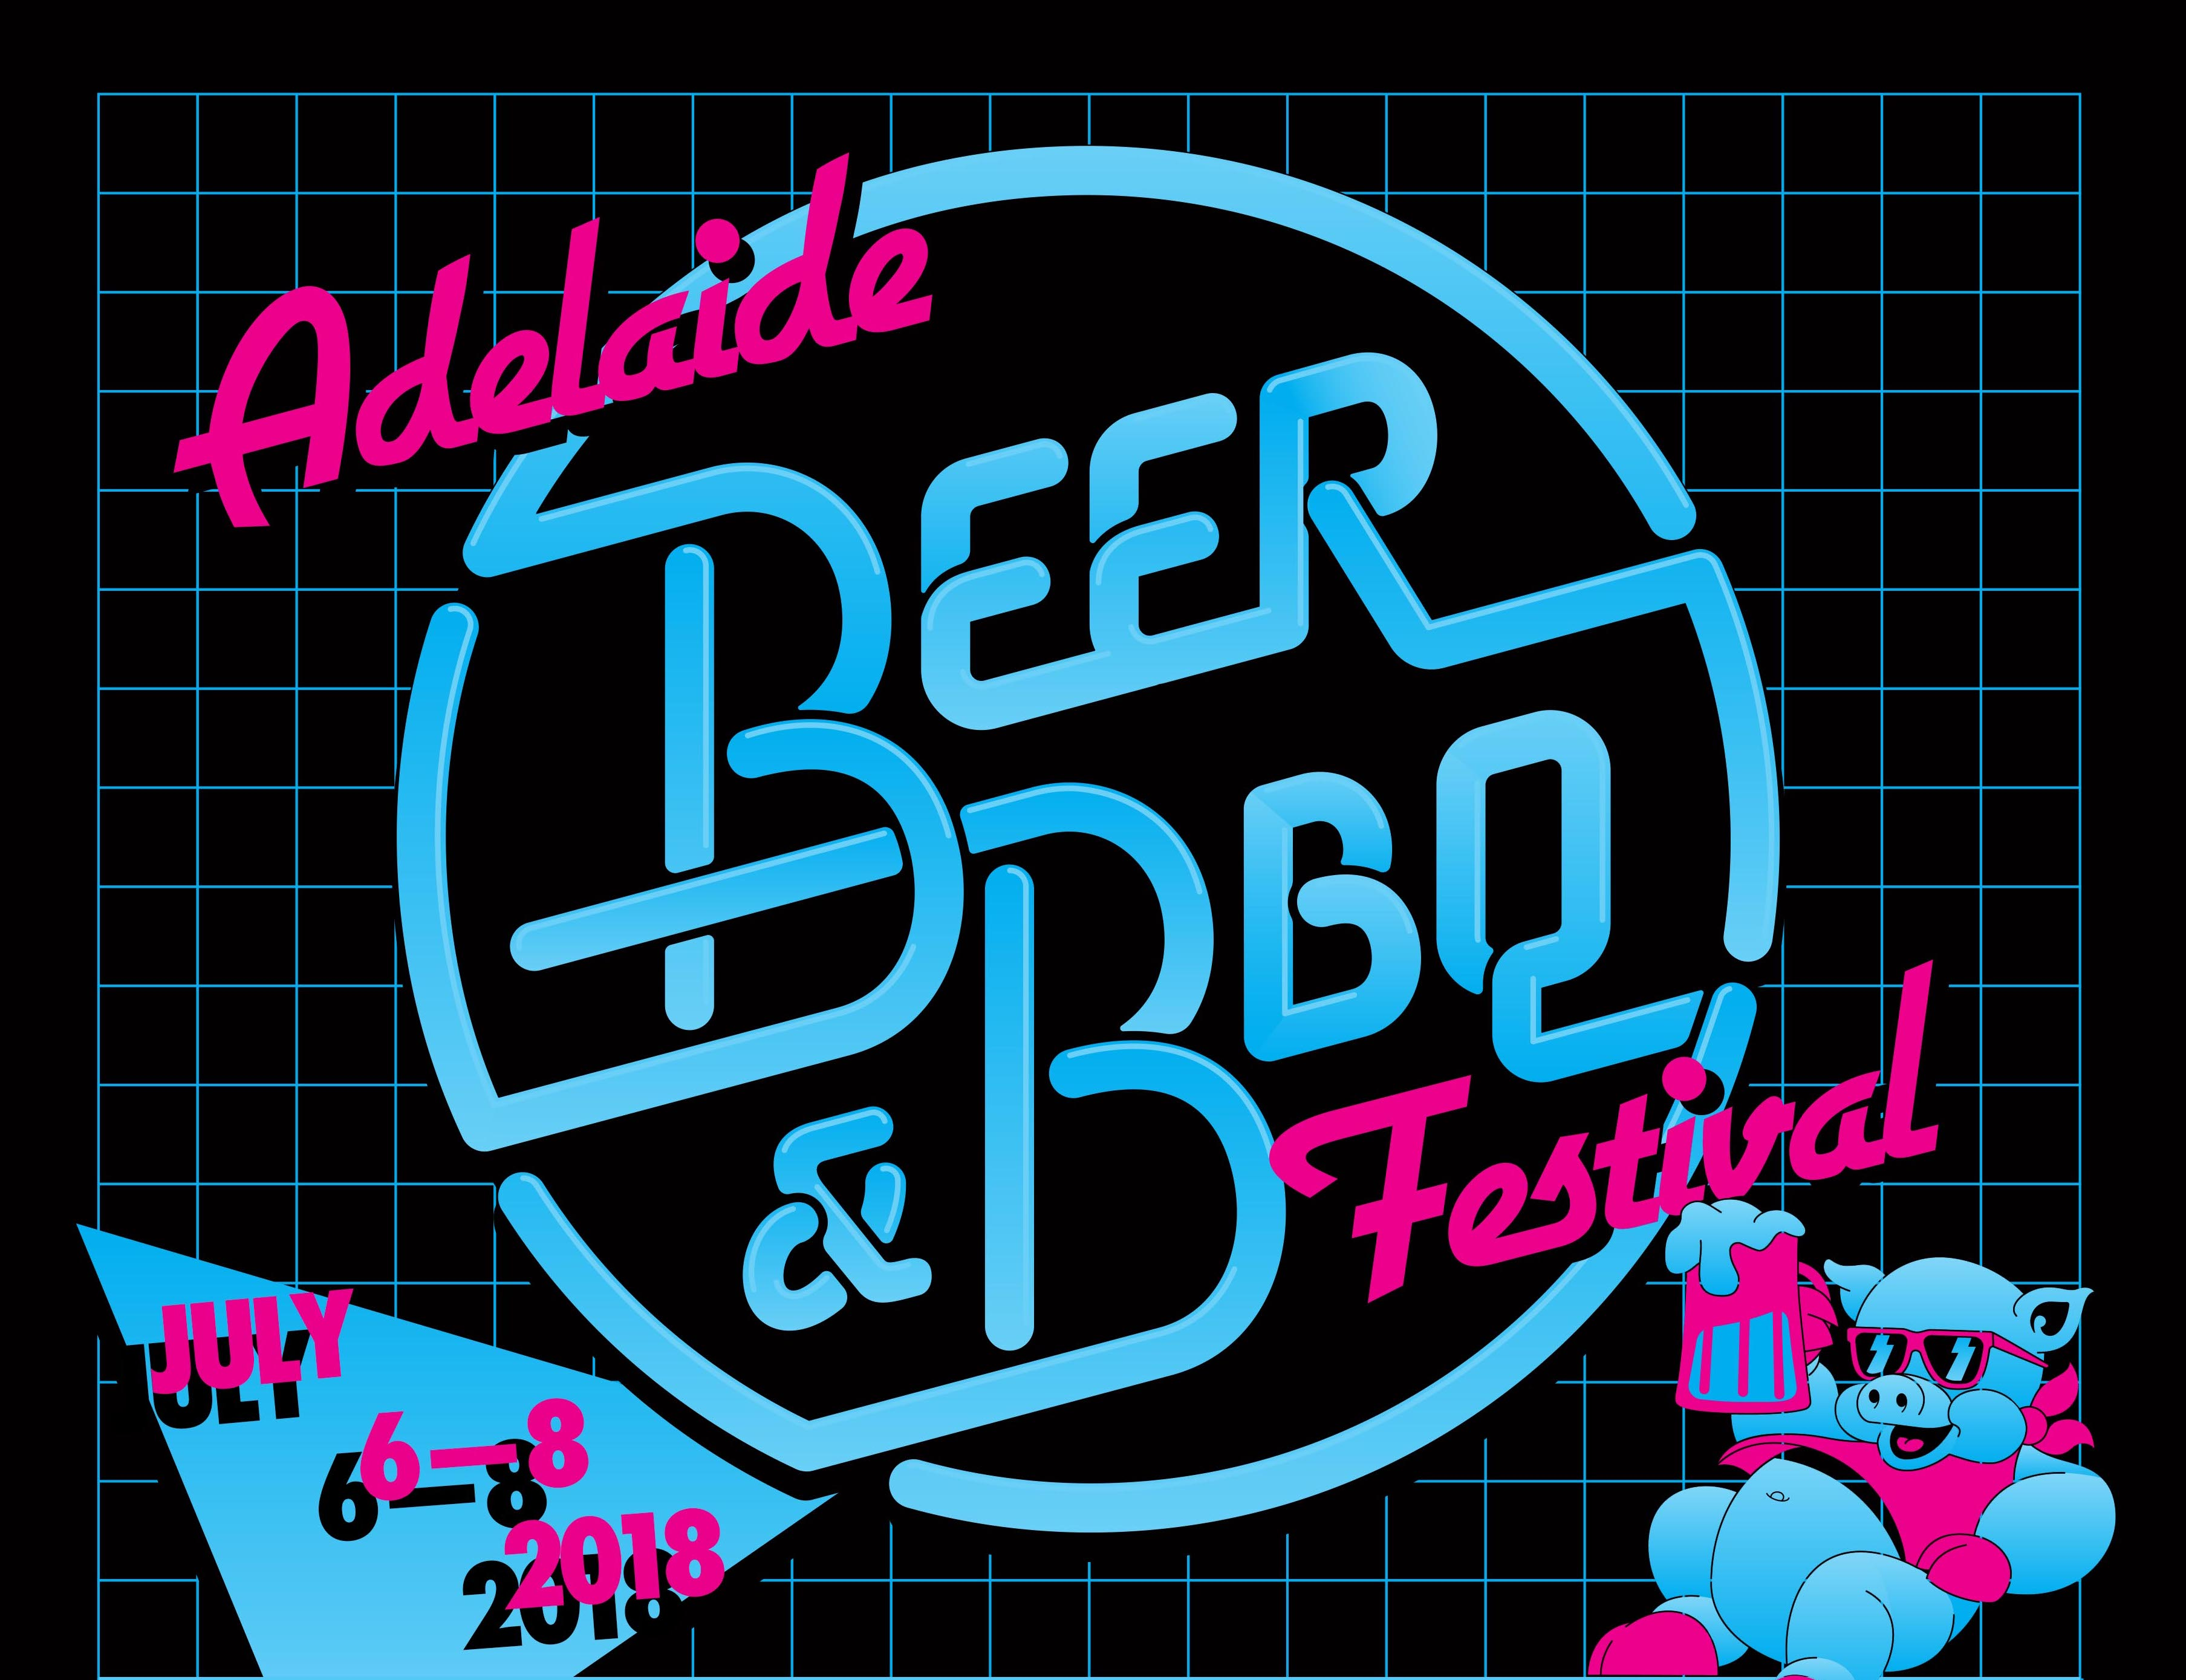 Adelaide Beer & BBQ Festival second artist announcement!